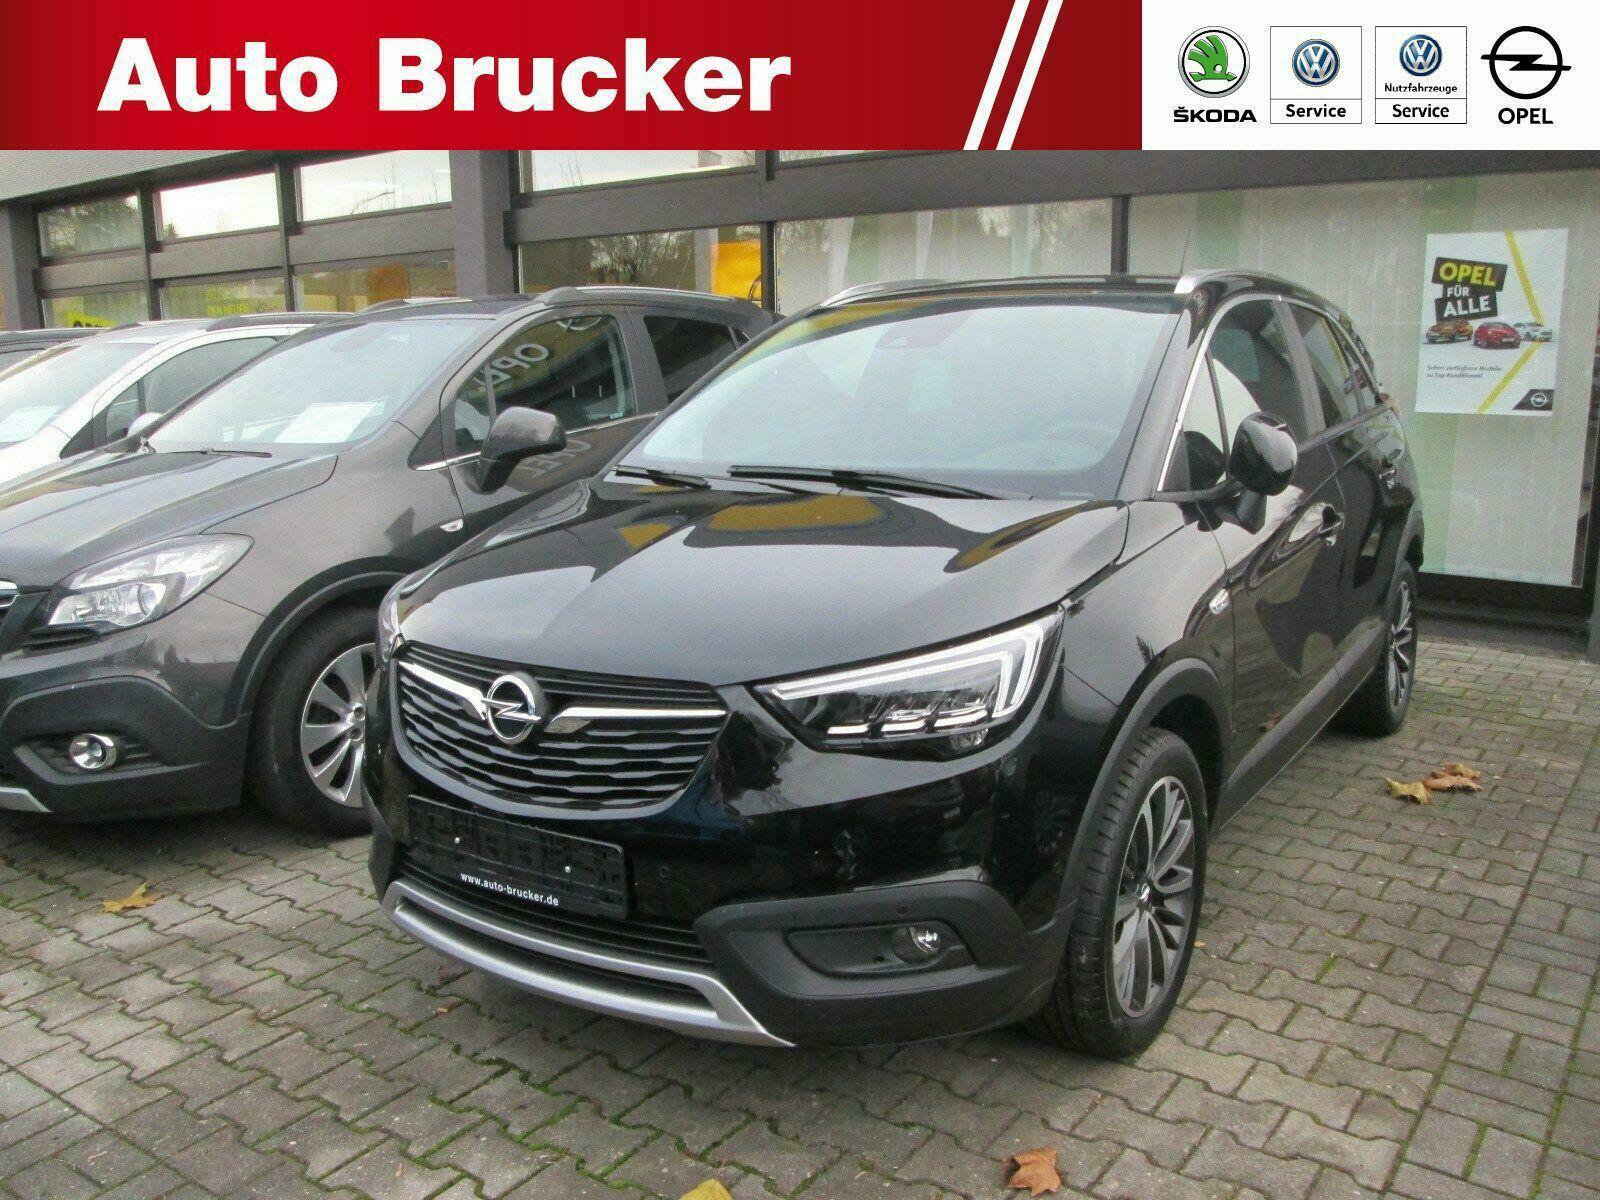 OPEL Crossland X INNOVATION, Navi, LED, PDC, Alu